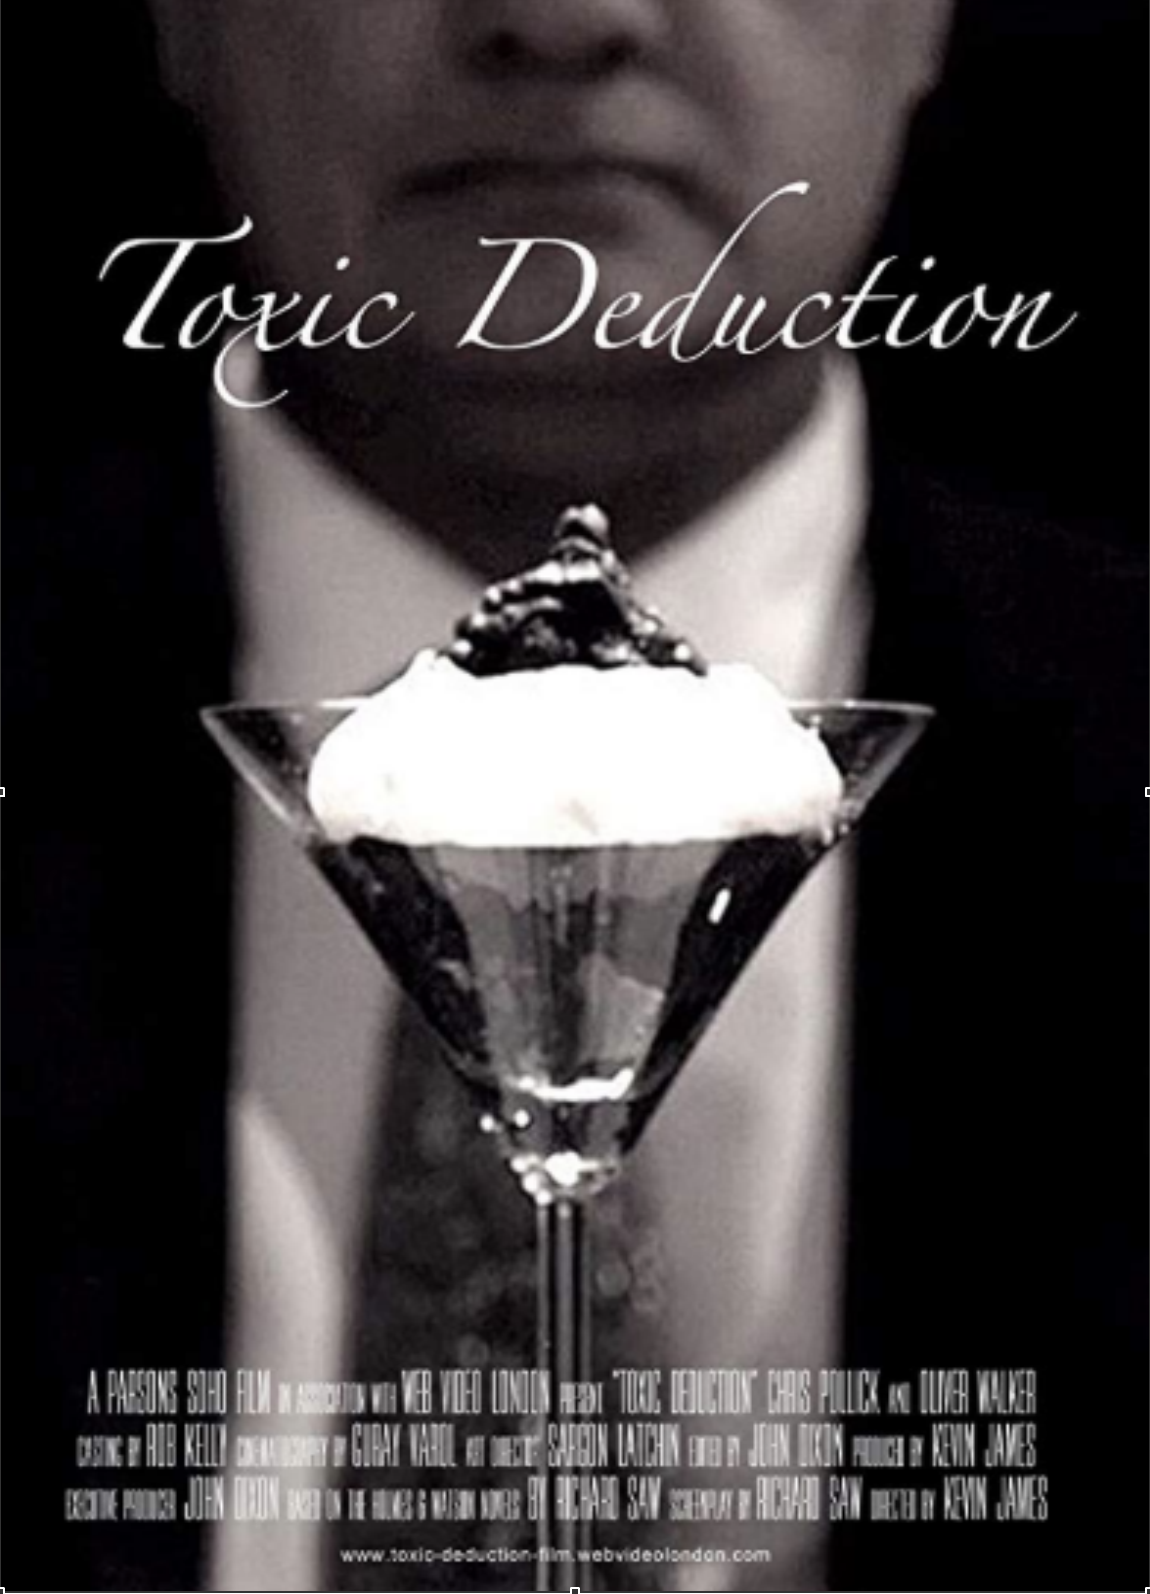 Toxic Deduction